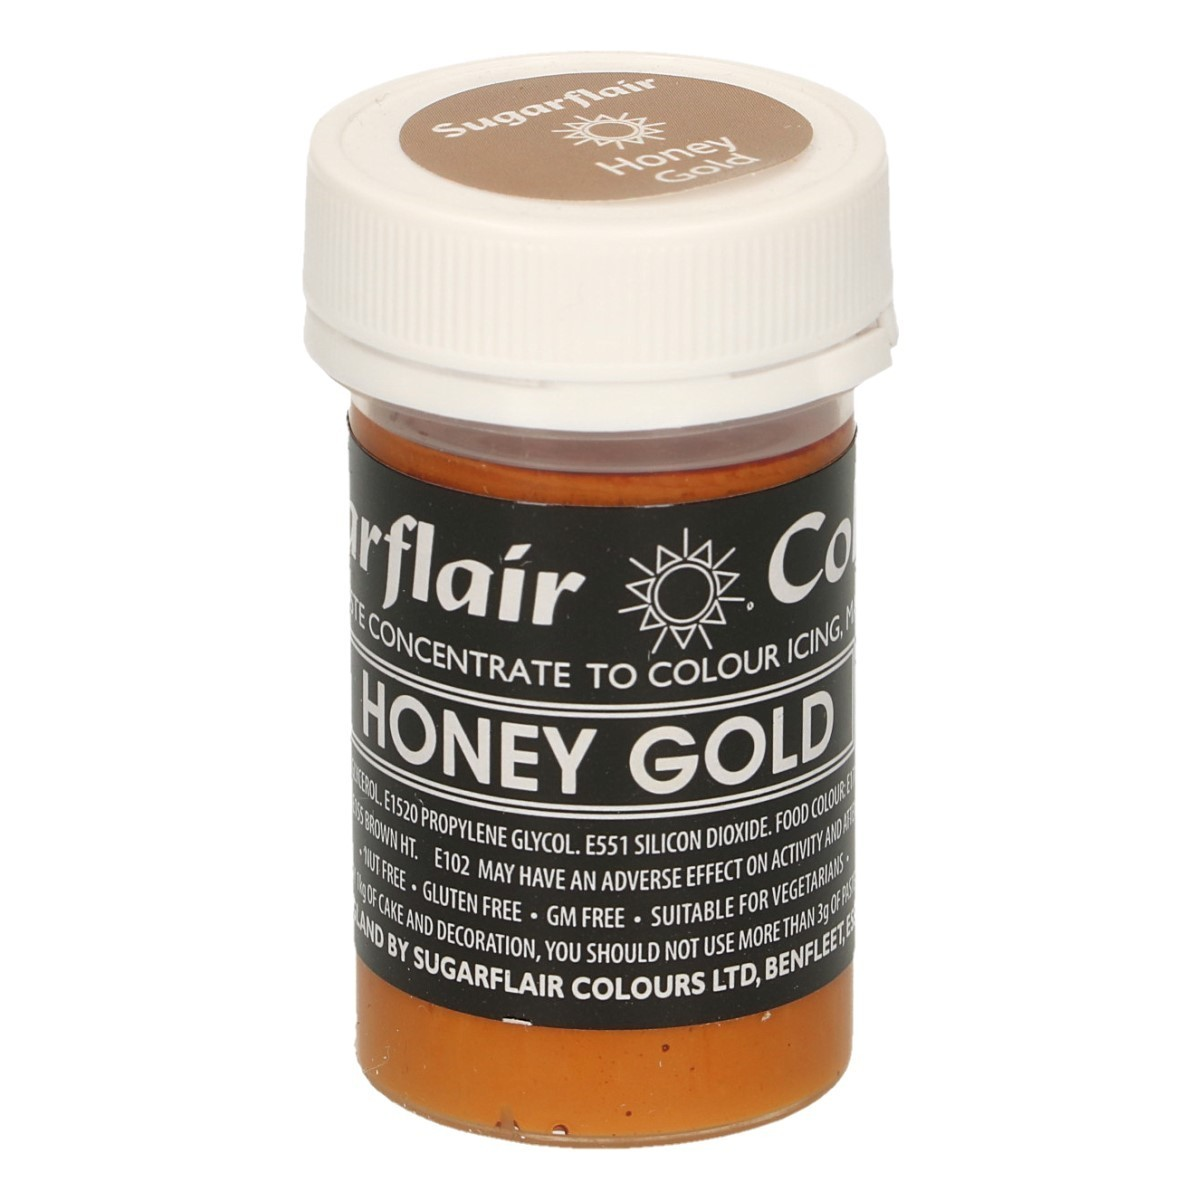 Sugarflair Concentrated Paste Honey Gold.jpg